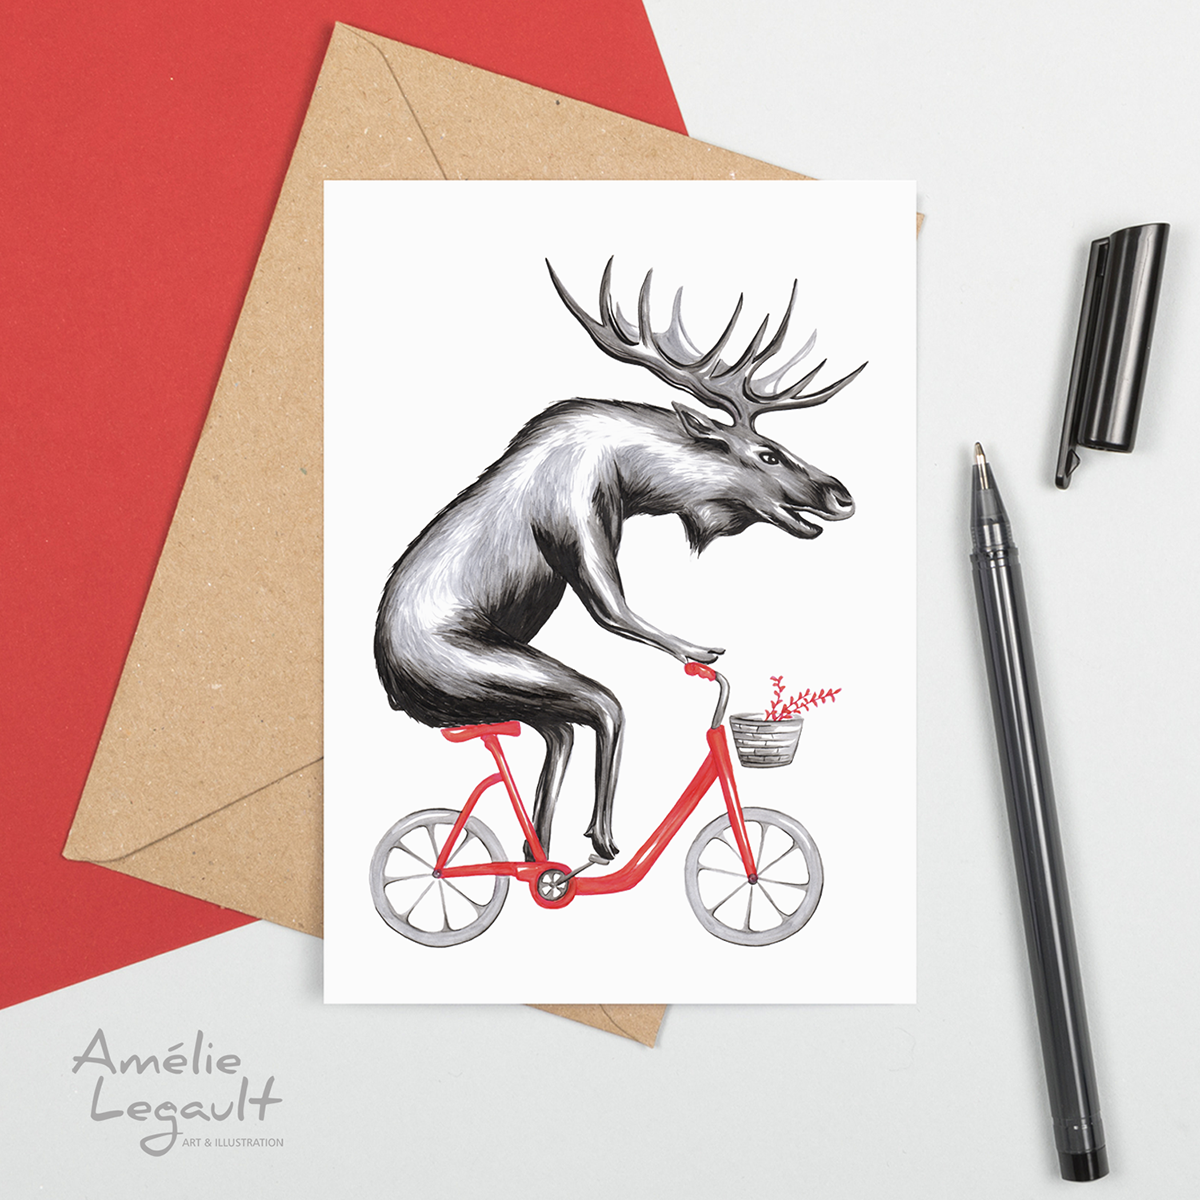 Moose, bike, bicycle, greeting card, birthday card, amelie legault, canada, canadiana, canadian animal, canadian artist